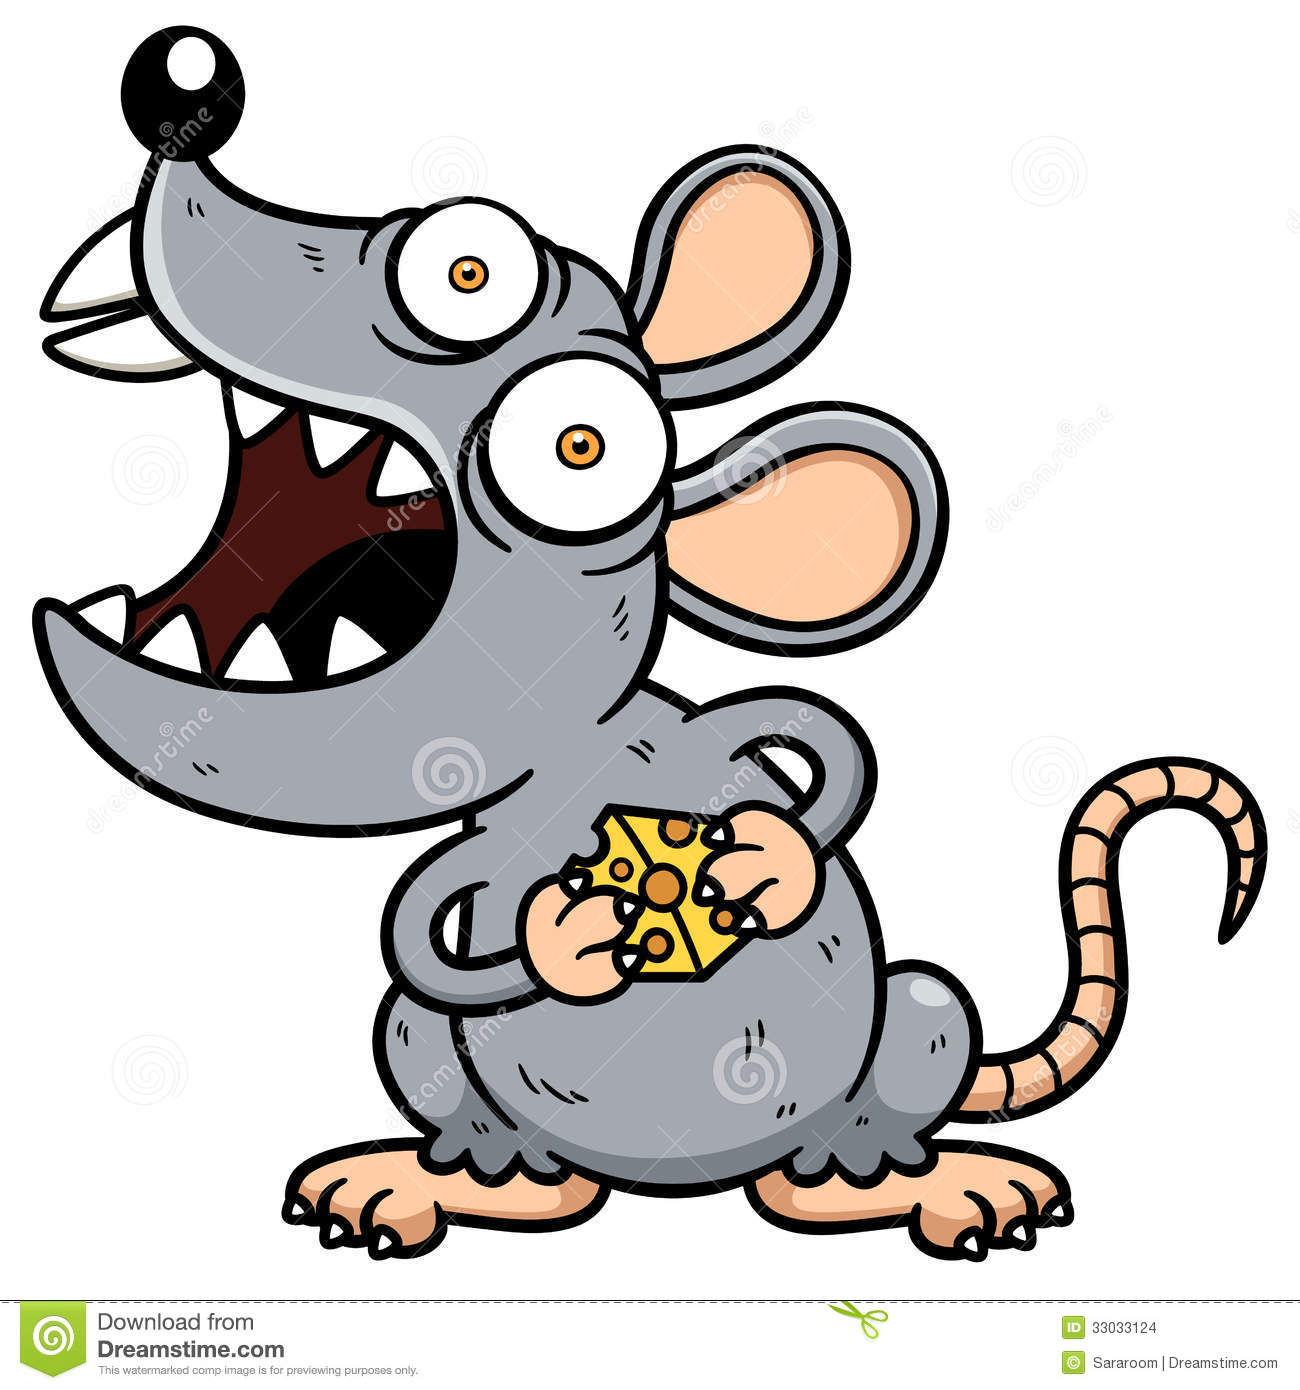 Rat clipart scary.